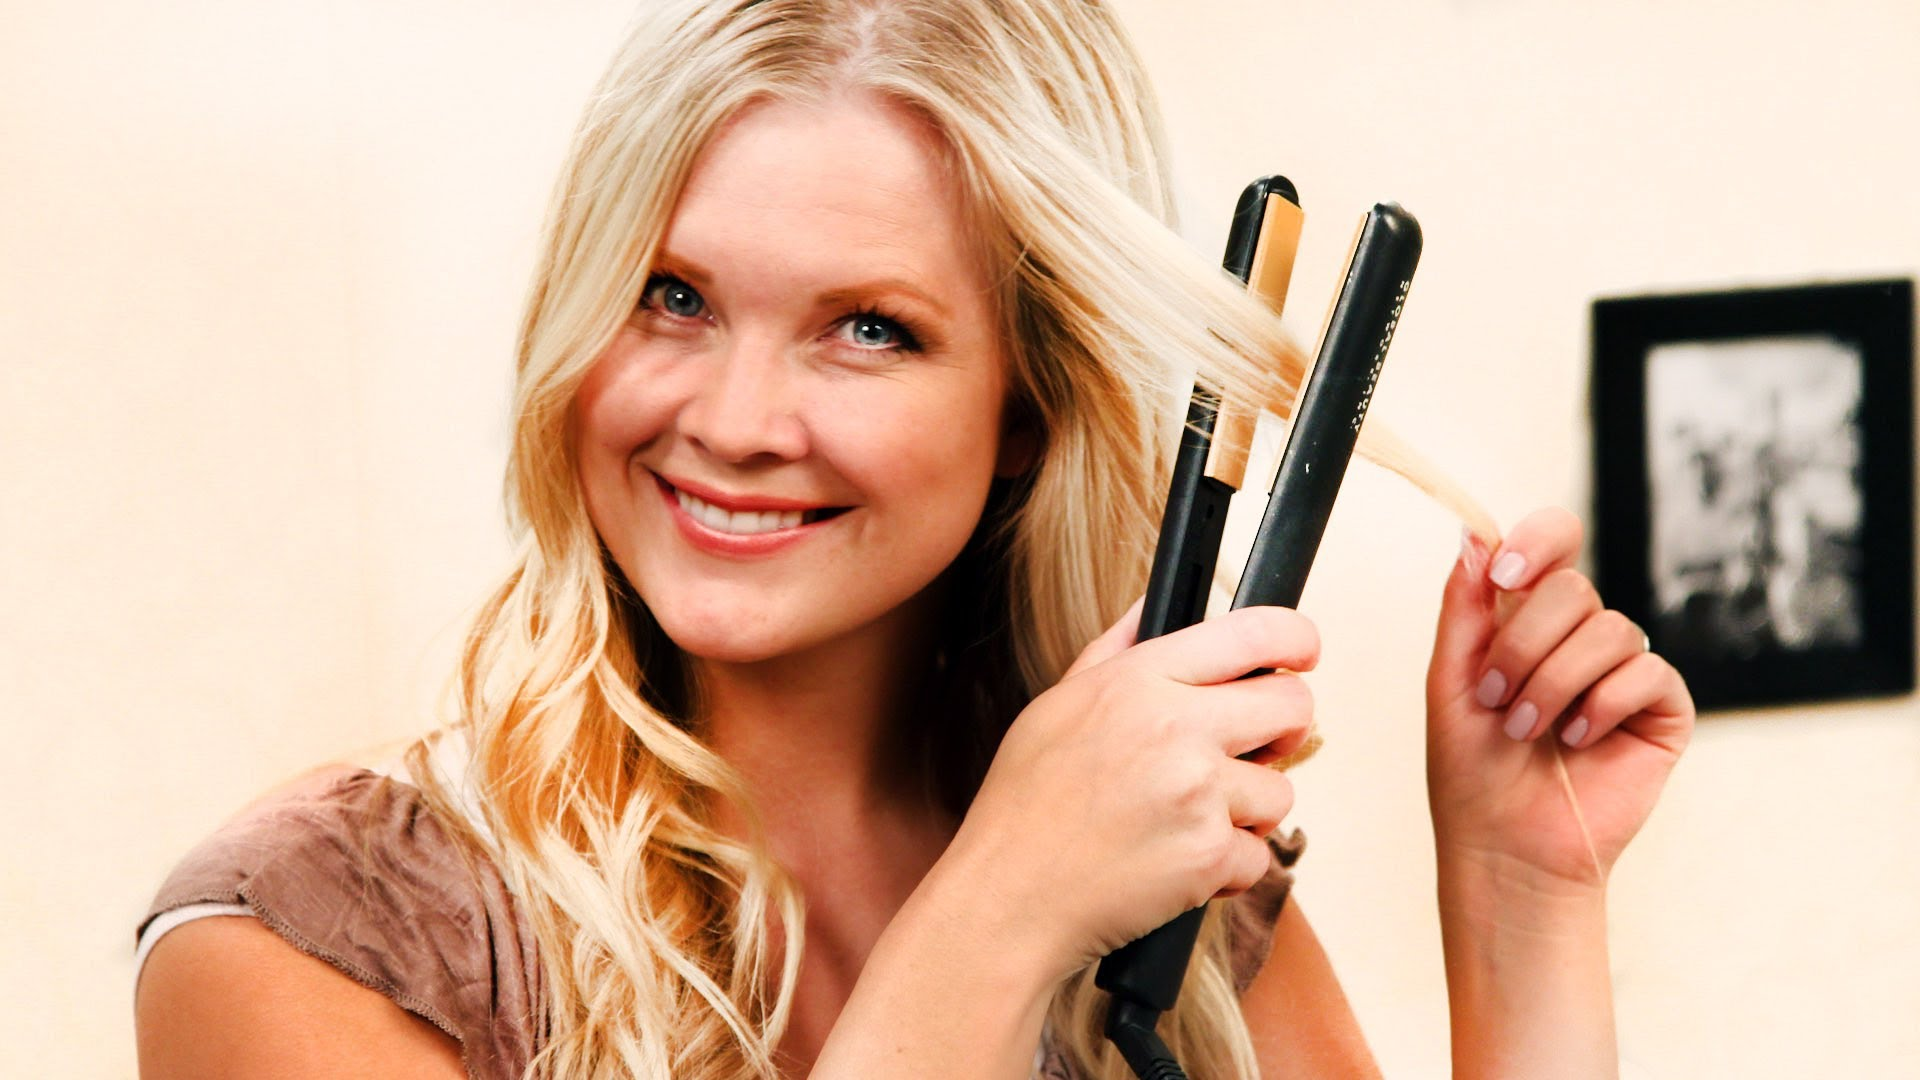 How-to Get Beach Waves with a Flat Iron! - YouTube